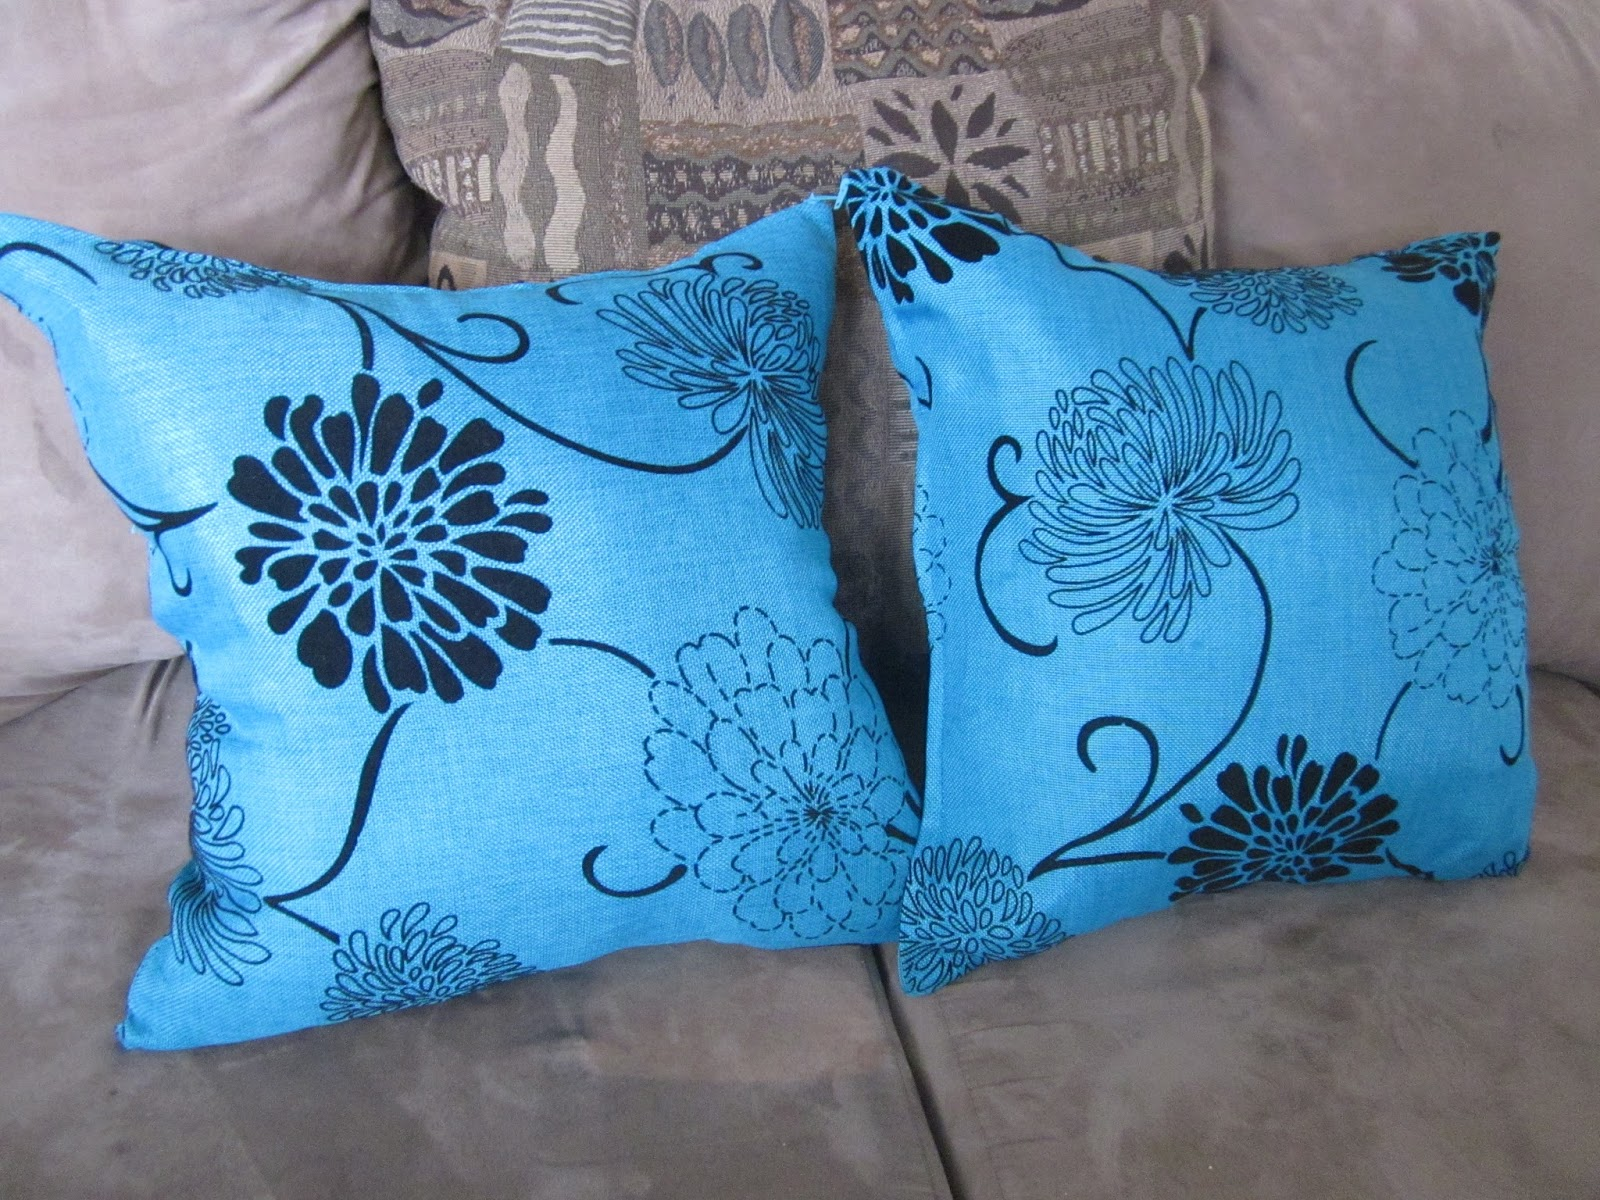 Old Plastic Bags to Pillow Inserts